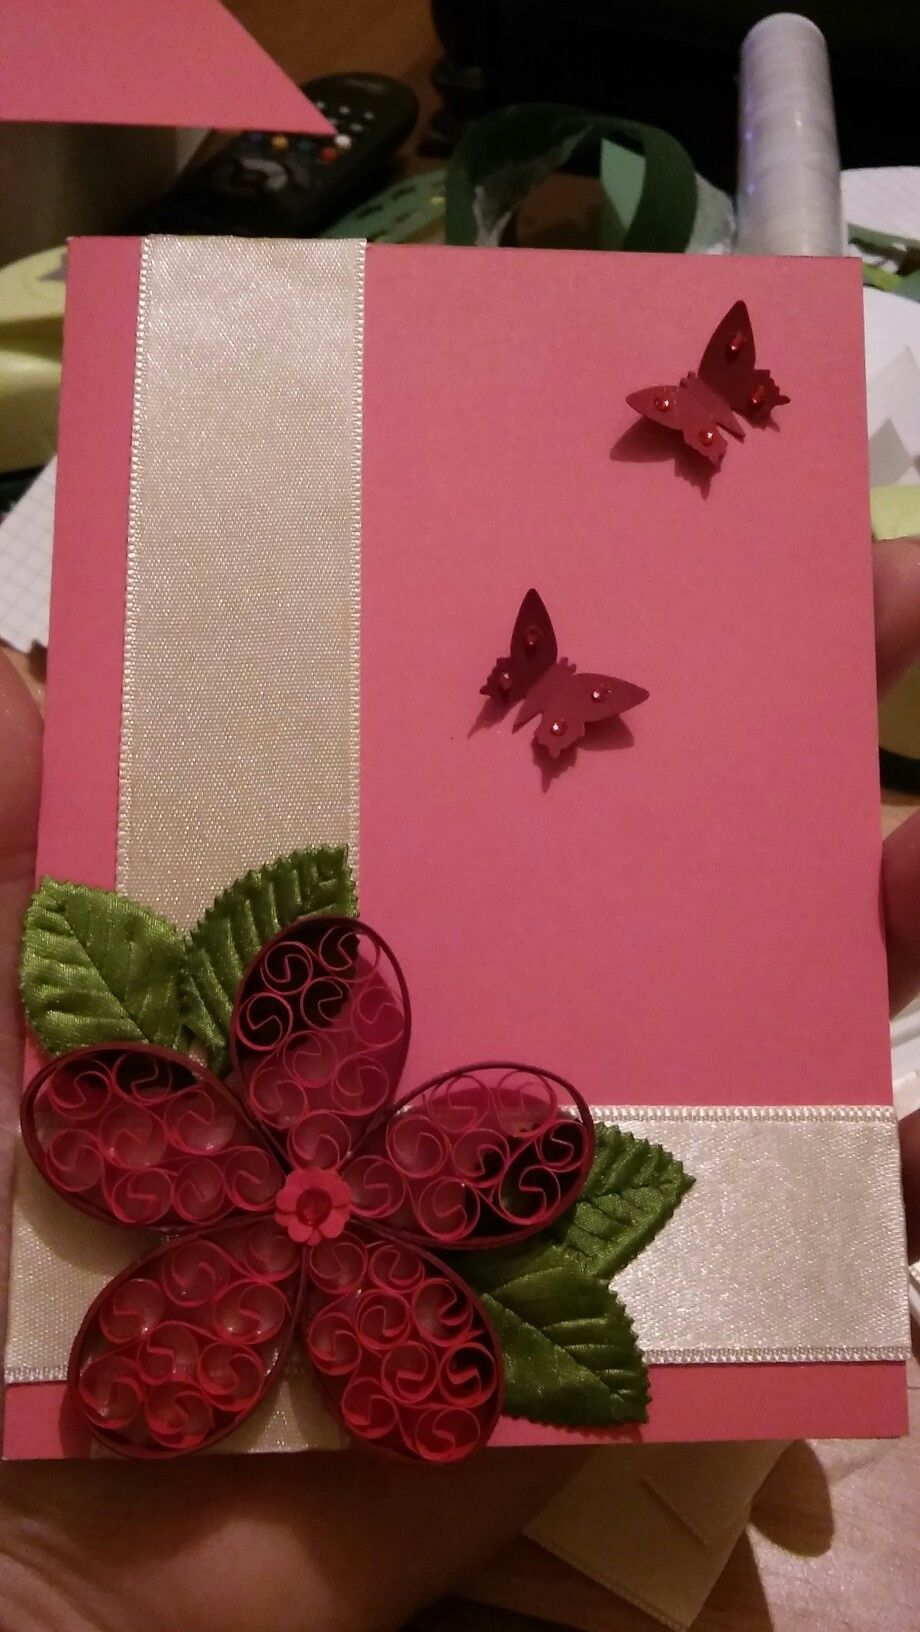 #handmade #cards #flowers #butterfly #pink #gift #quilling